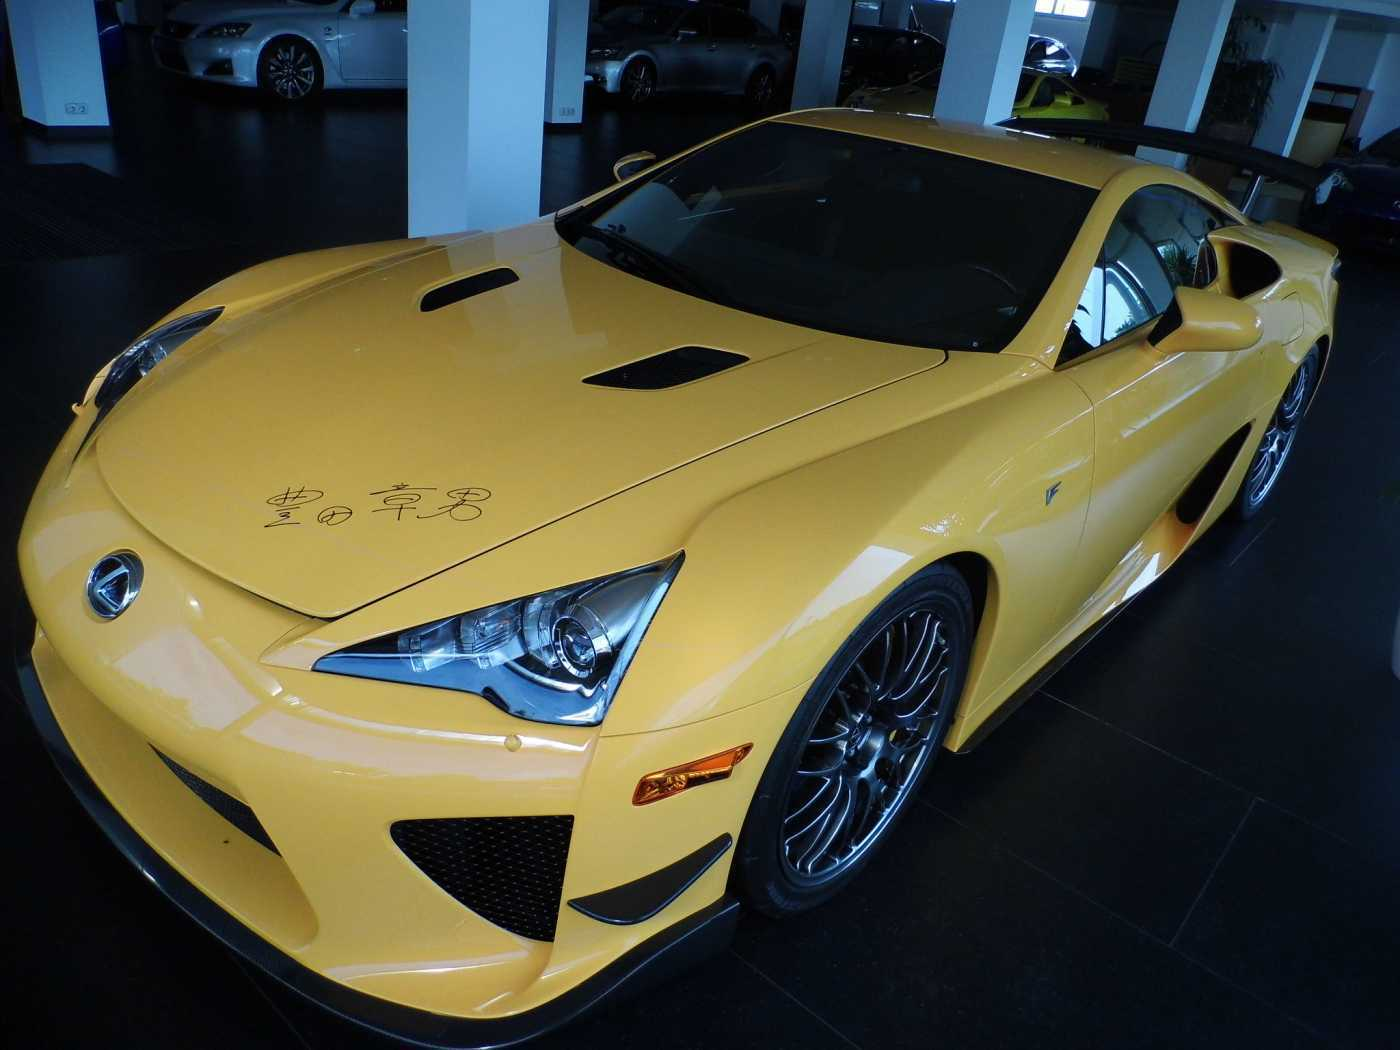 Lexus Nürnberg Would You Pay 7 Million For A Lexus Lfa Nurburgring Edition